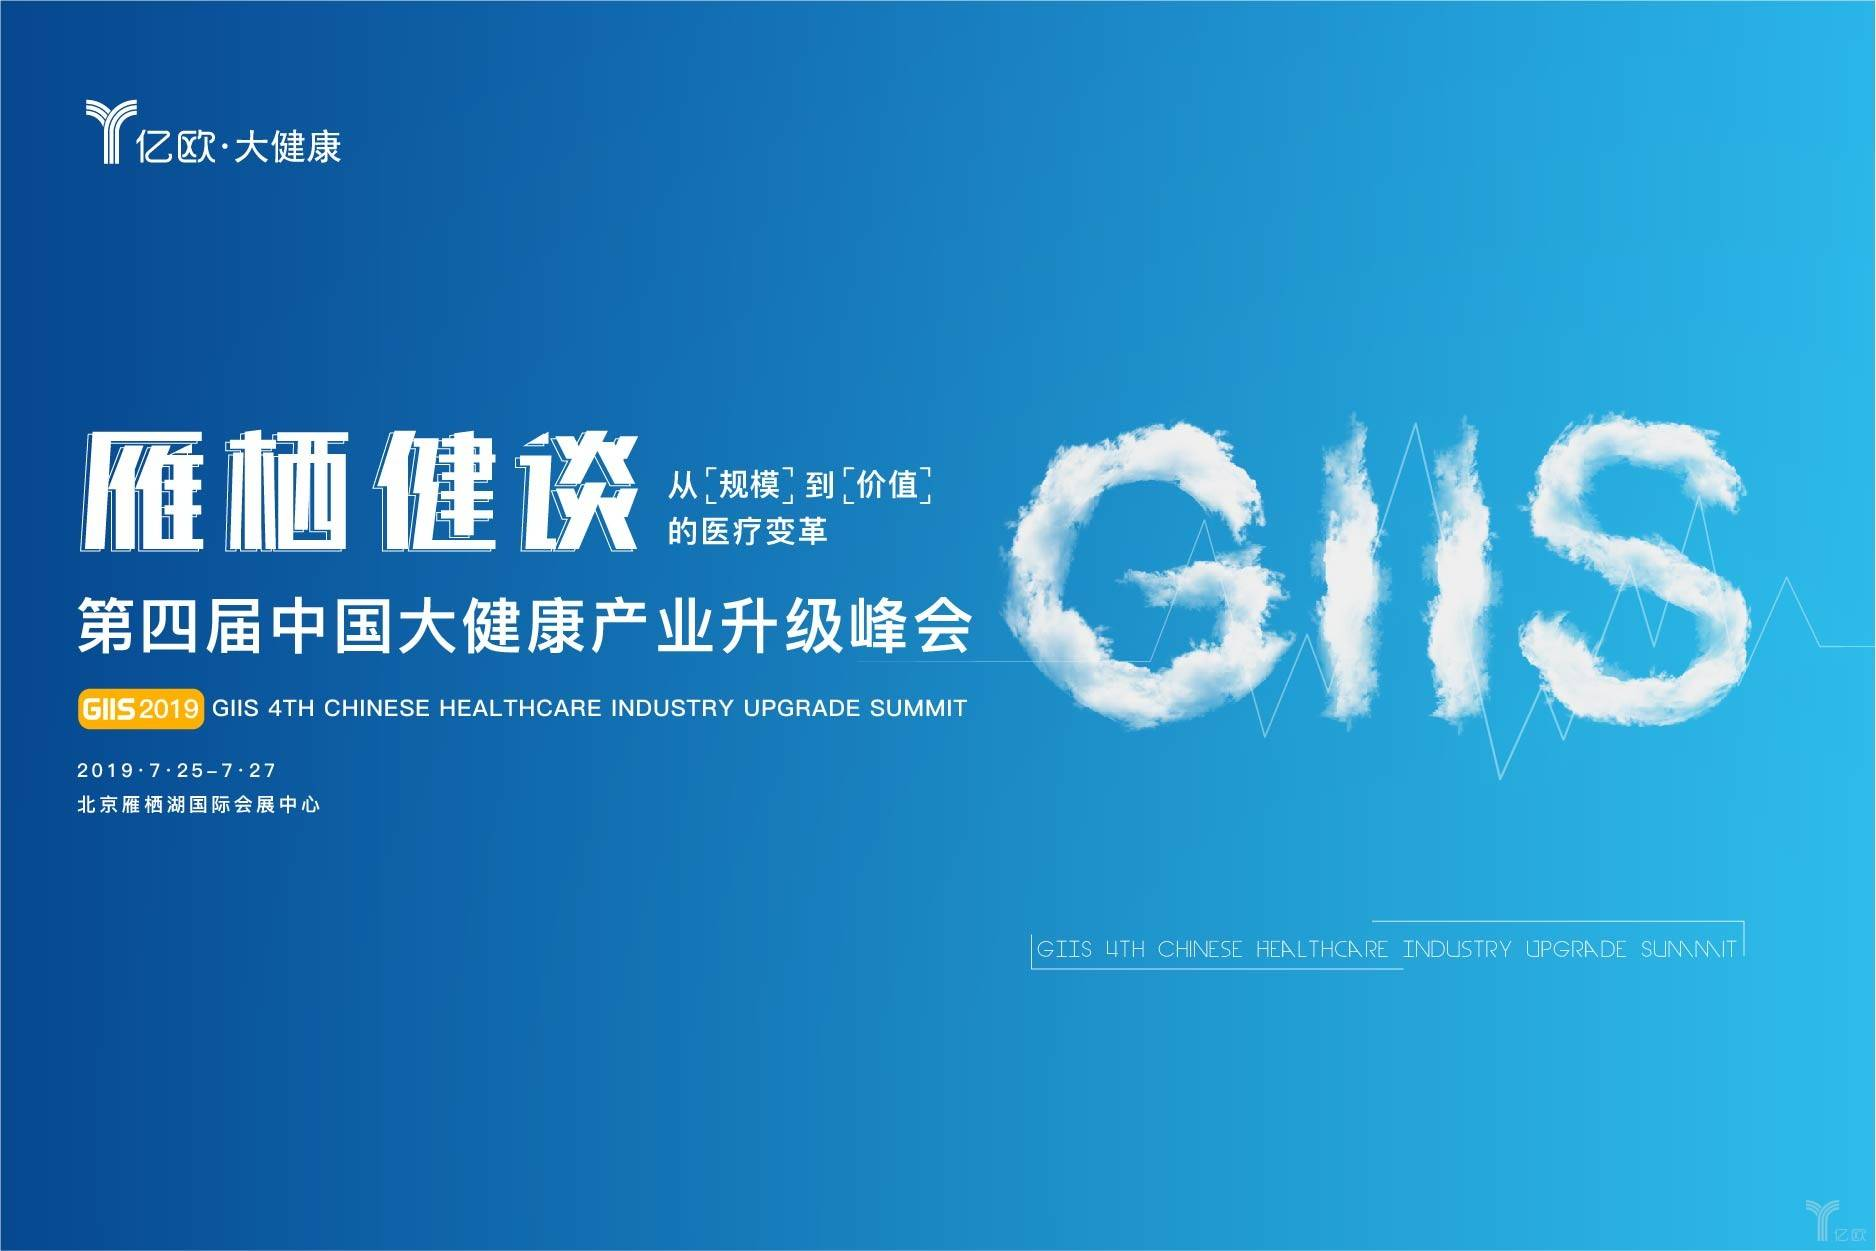 健客謝方敏確認參加雁棲健談·GIIS 4th CHIU Summit